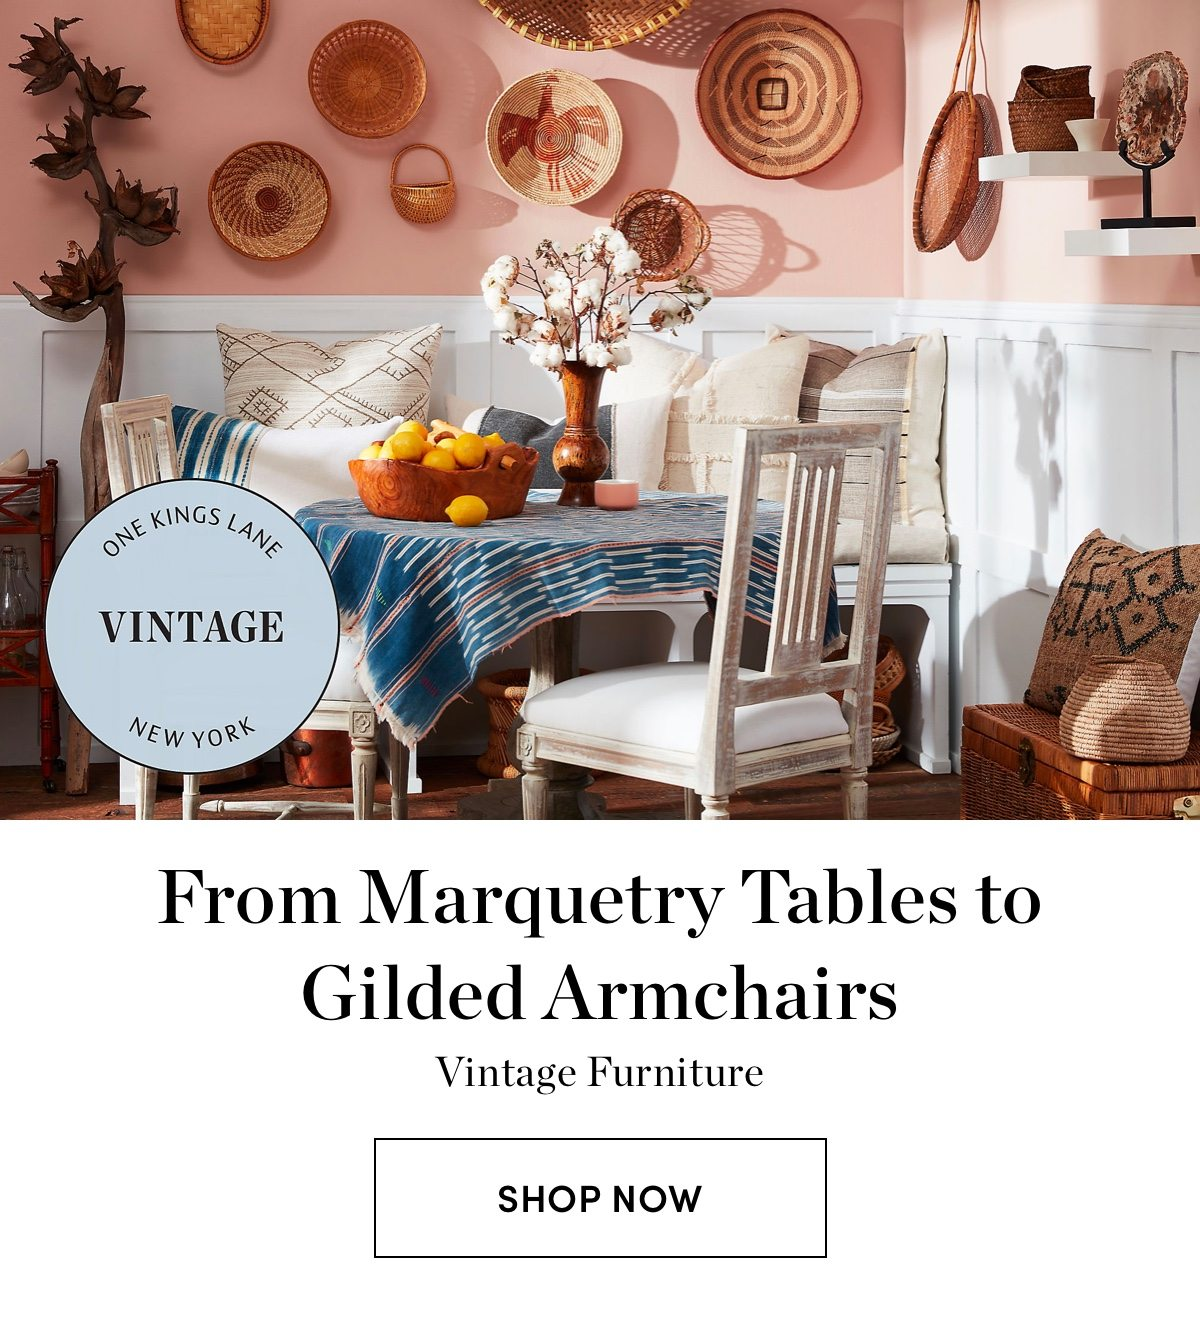 From Marquetry Tables to Gilded Armchairs